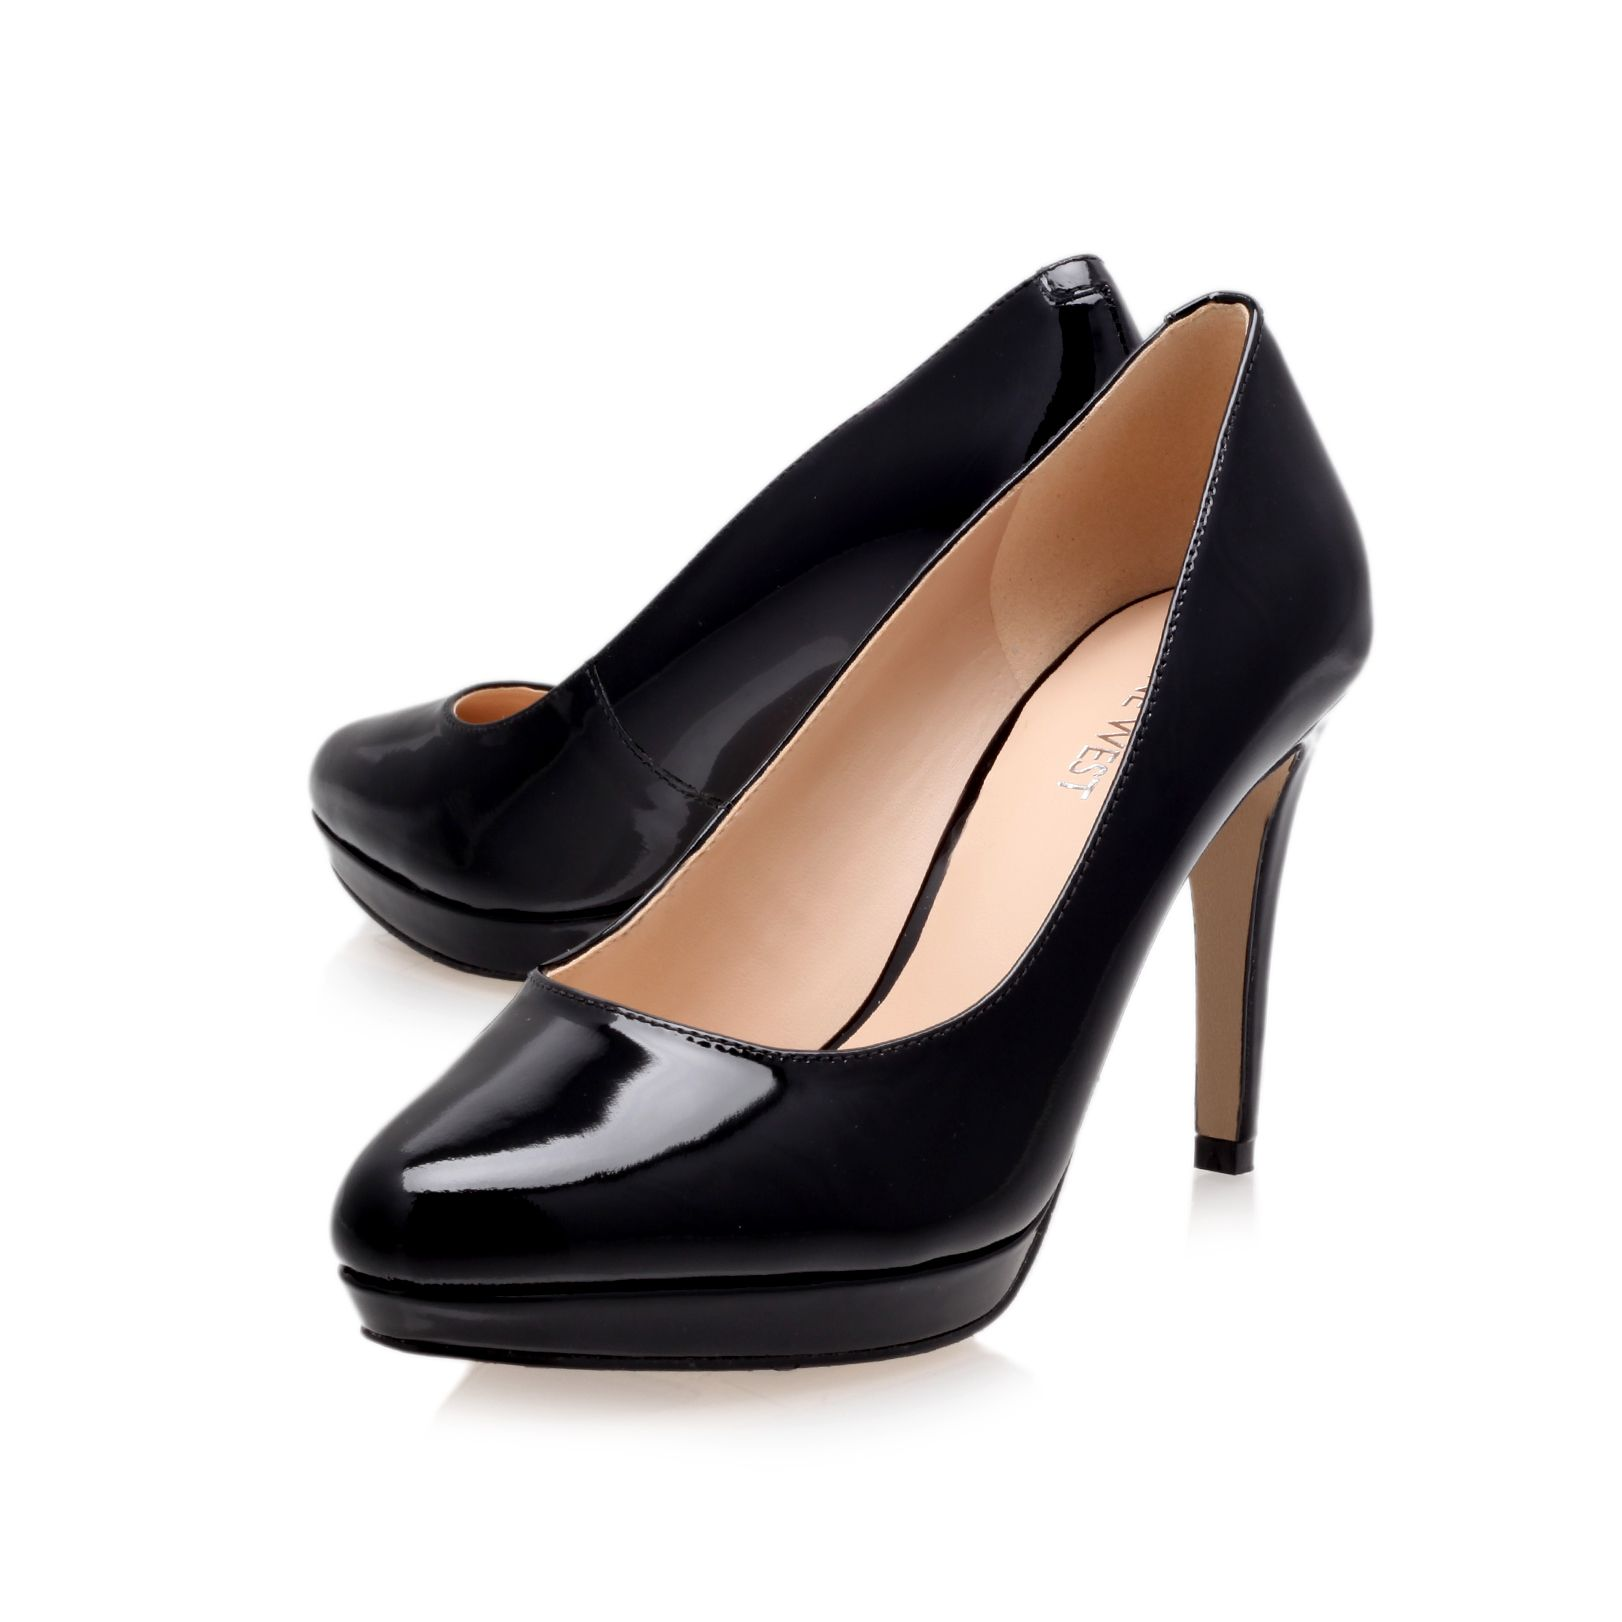 Beautie heeled court shoes